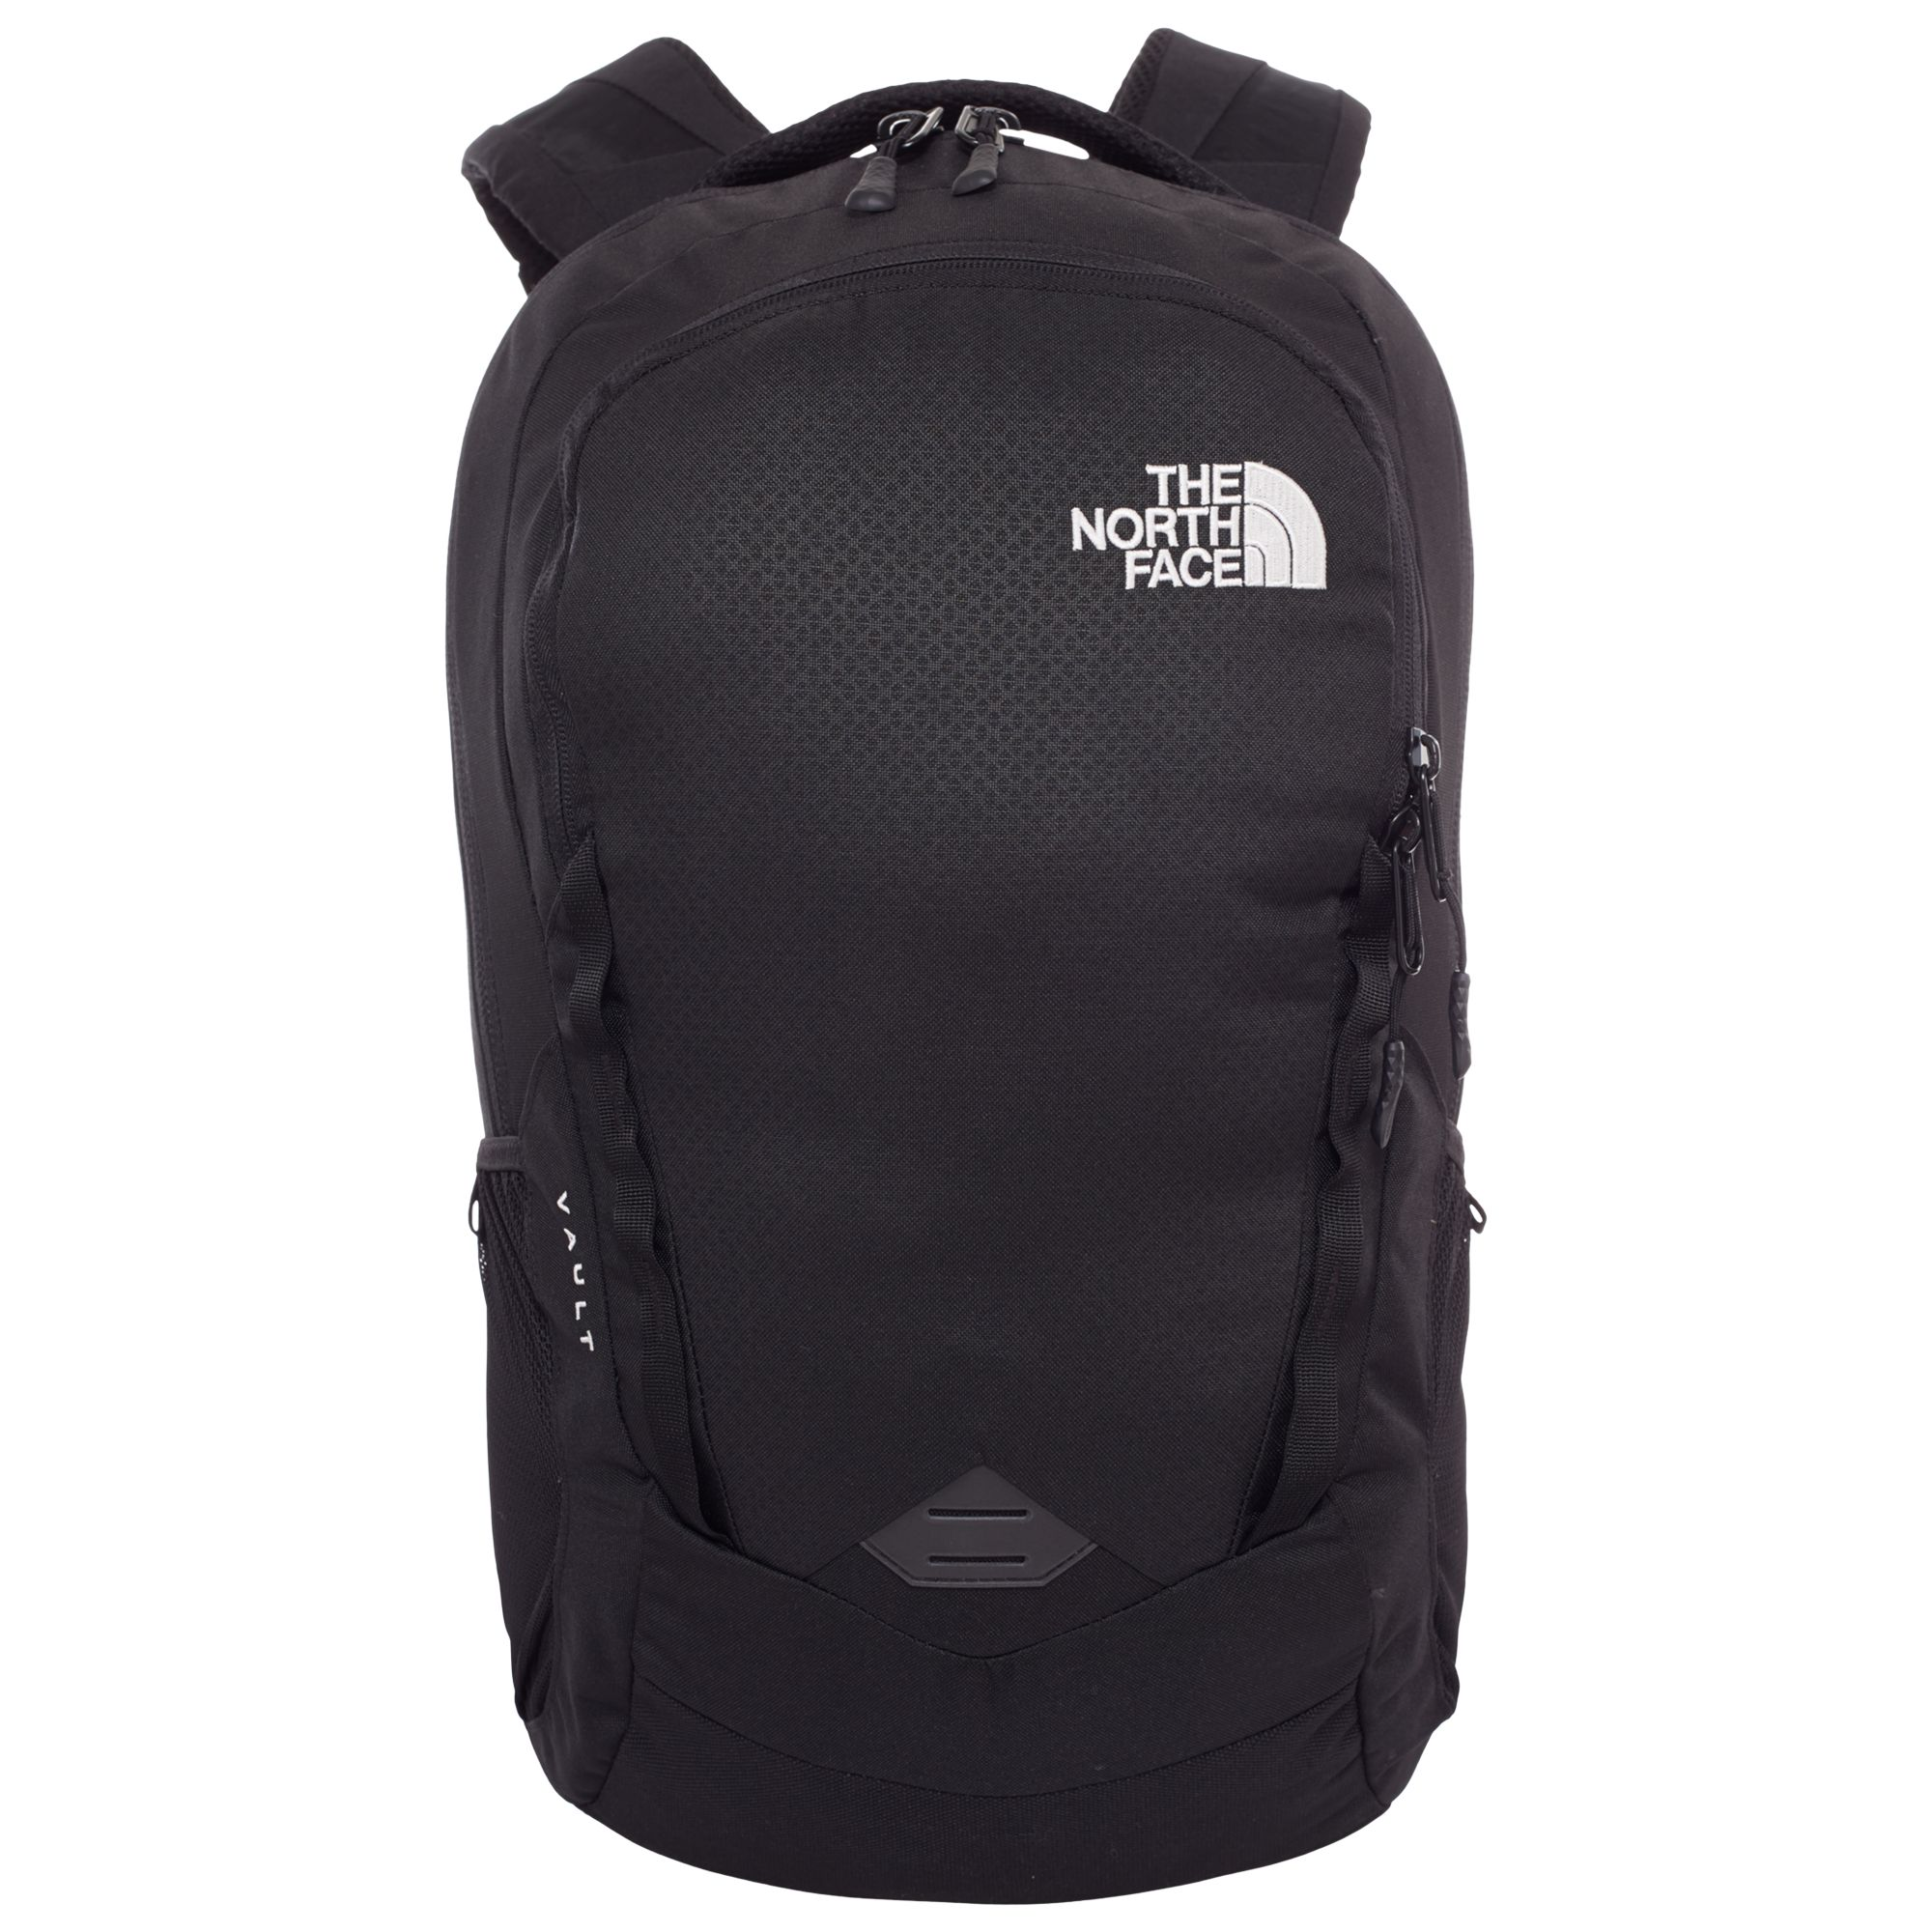 96b2c7e49 The North Face Vault Backpack, Black at John Lewis & Partners